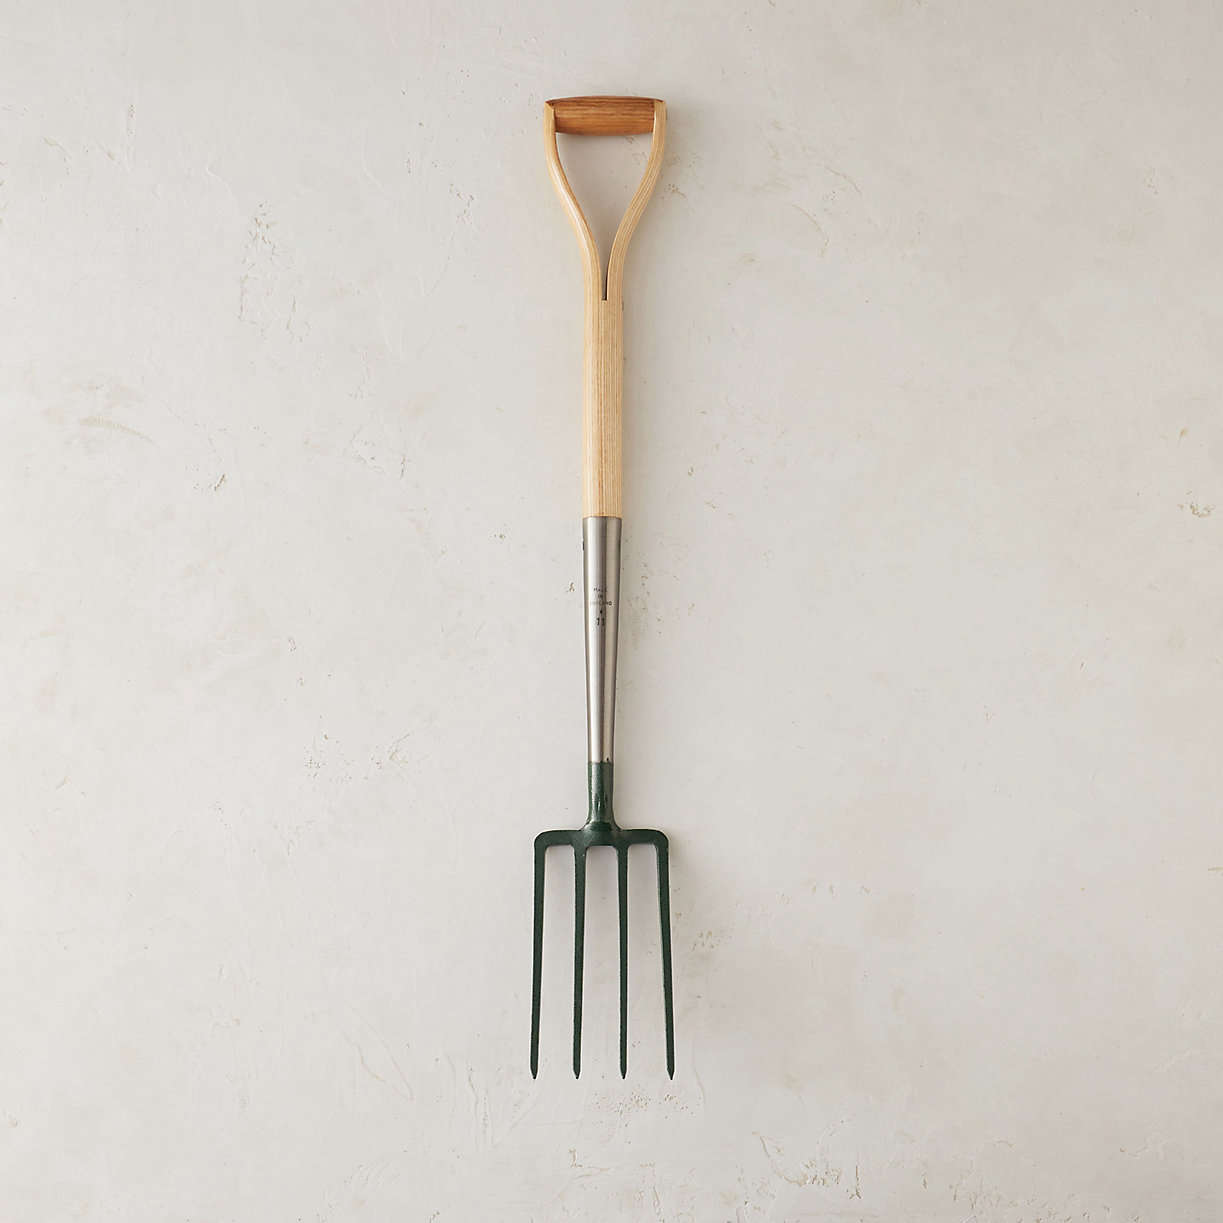 Also shown in the top photo of this post, a Clarington Forge Border Fork is handmade in England and has a compact 37-inch ash handle to make it easy to maneuver in tight spaces such as compost bins. It is $78 from Terrain.